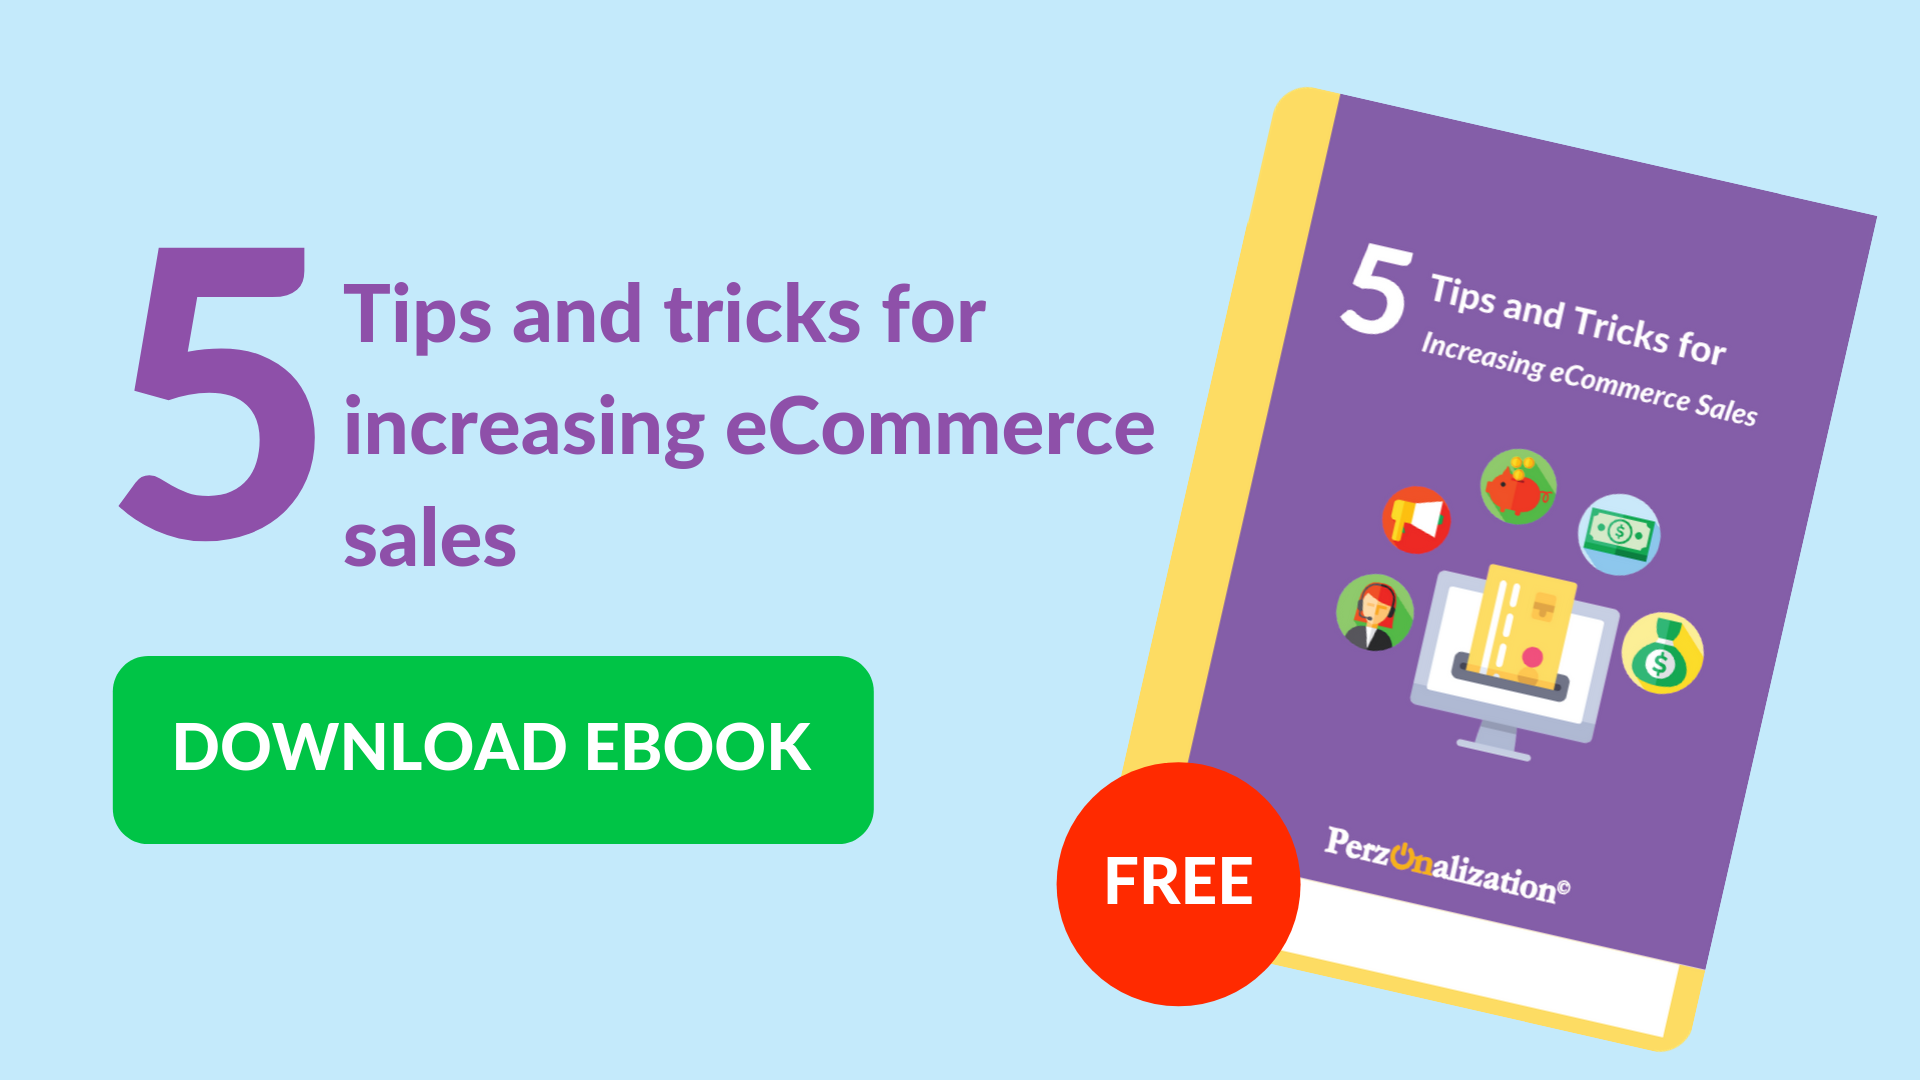 Download free eBook: Tips for increasing eCommerce sales